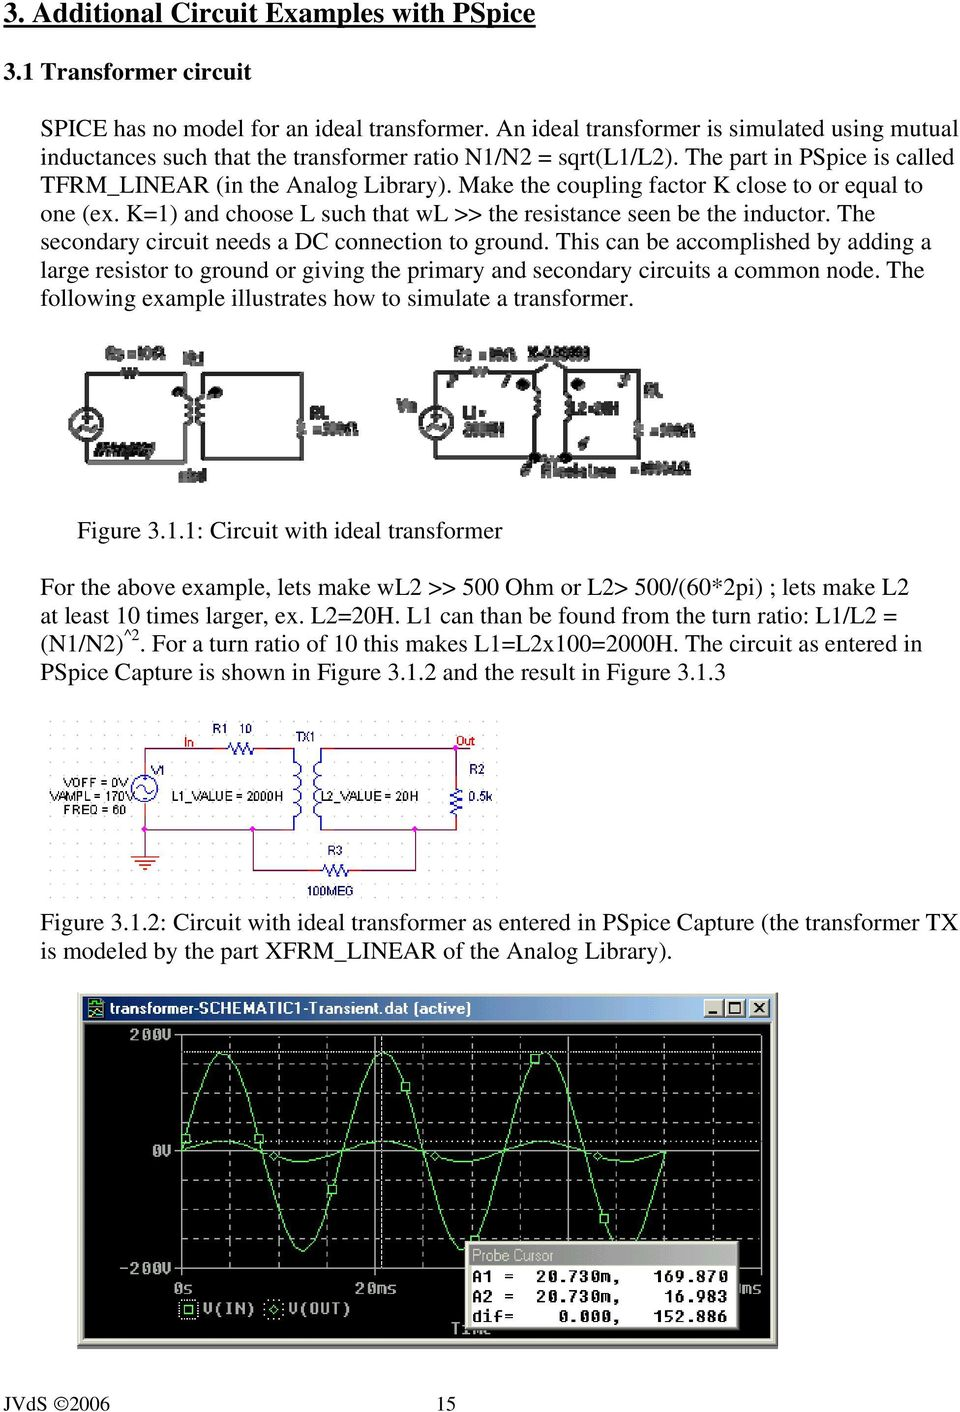 Pspice A Brief Primer Pdf Use Circuit Builder Software To Construct Both Circuits In Figure Make The Coupling Factor K Close Or Equal One Ex